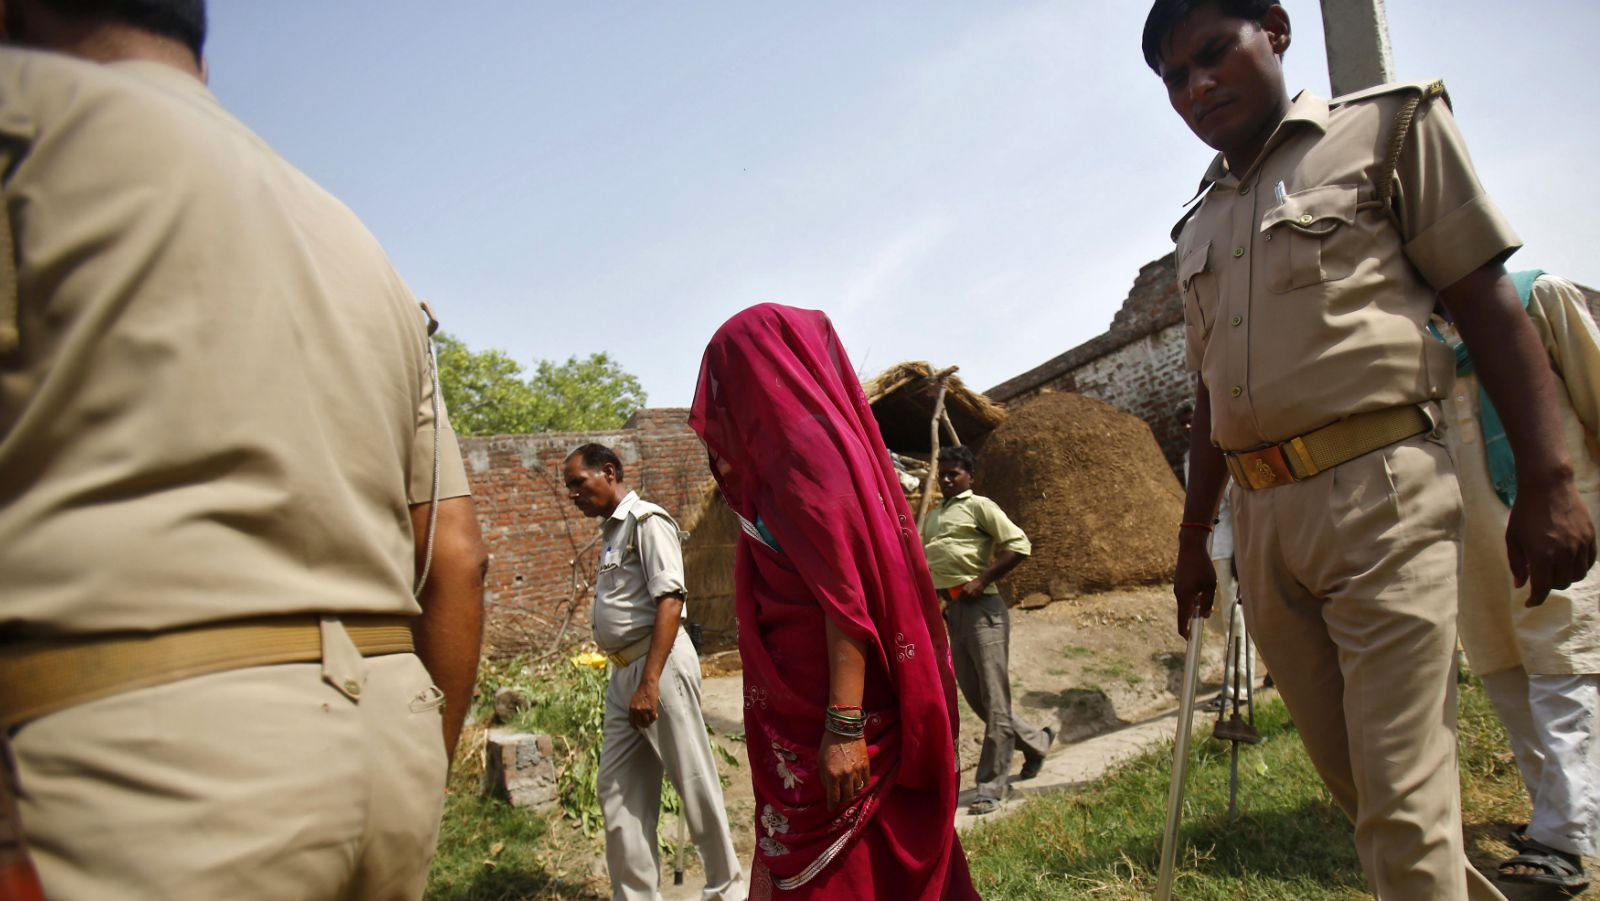 The veiled mother of one of the two teenage girls, who were raped and hanged from a tree, walks along with policemen at Budaun district in the northern Indian state of Uttar Pradesh May 31, 2014. India's new Home Minister Rajnath Singh weighed in on Friday in a grisly case in which two teenage girls were raped and hanged from a tree this week in Uttar Pradesh, as public anger and political controversy over the attack gain momentum.